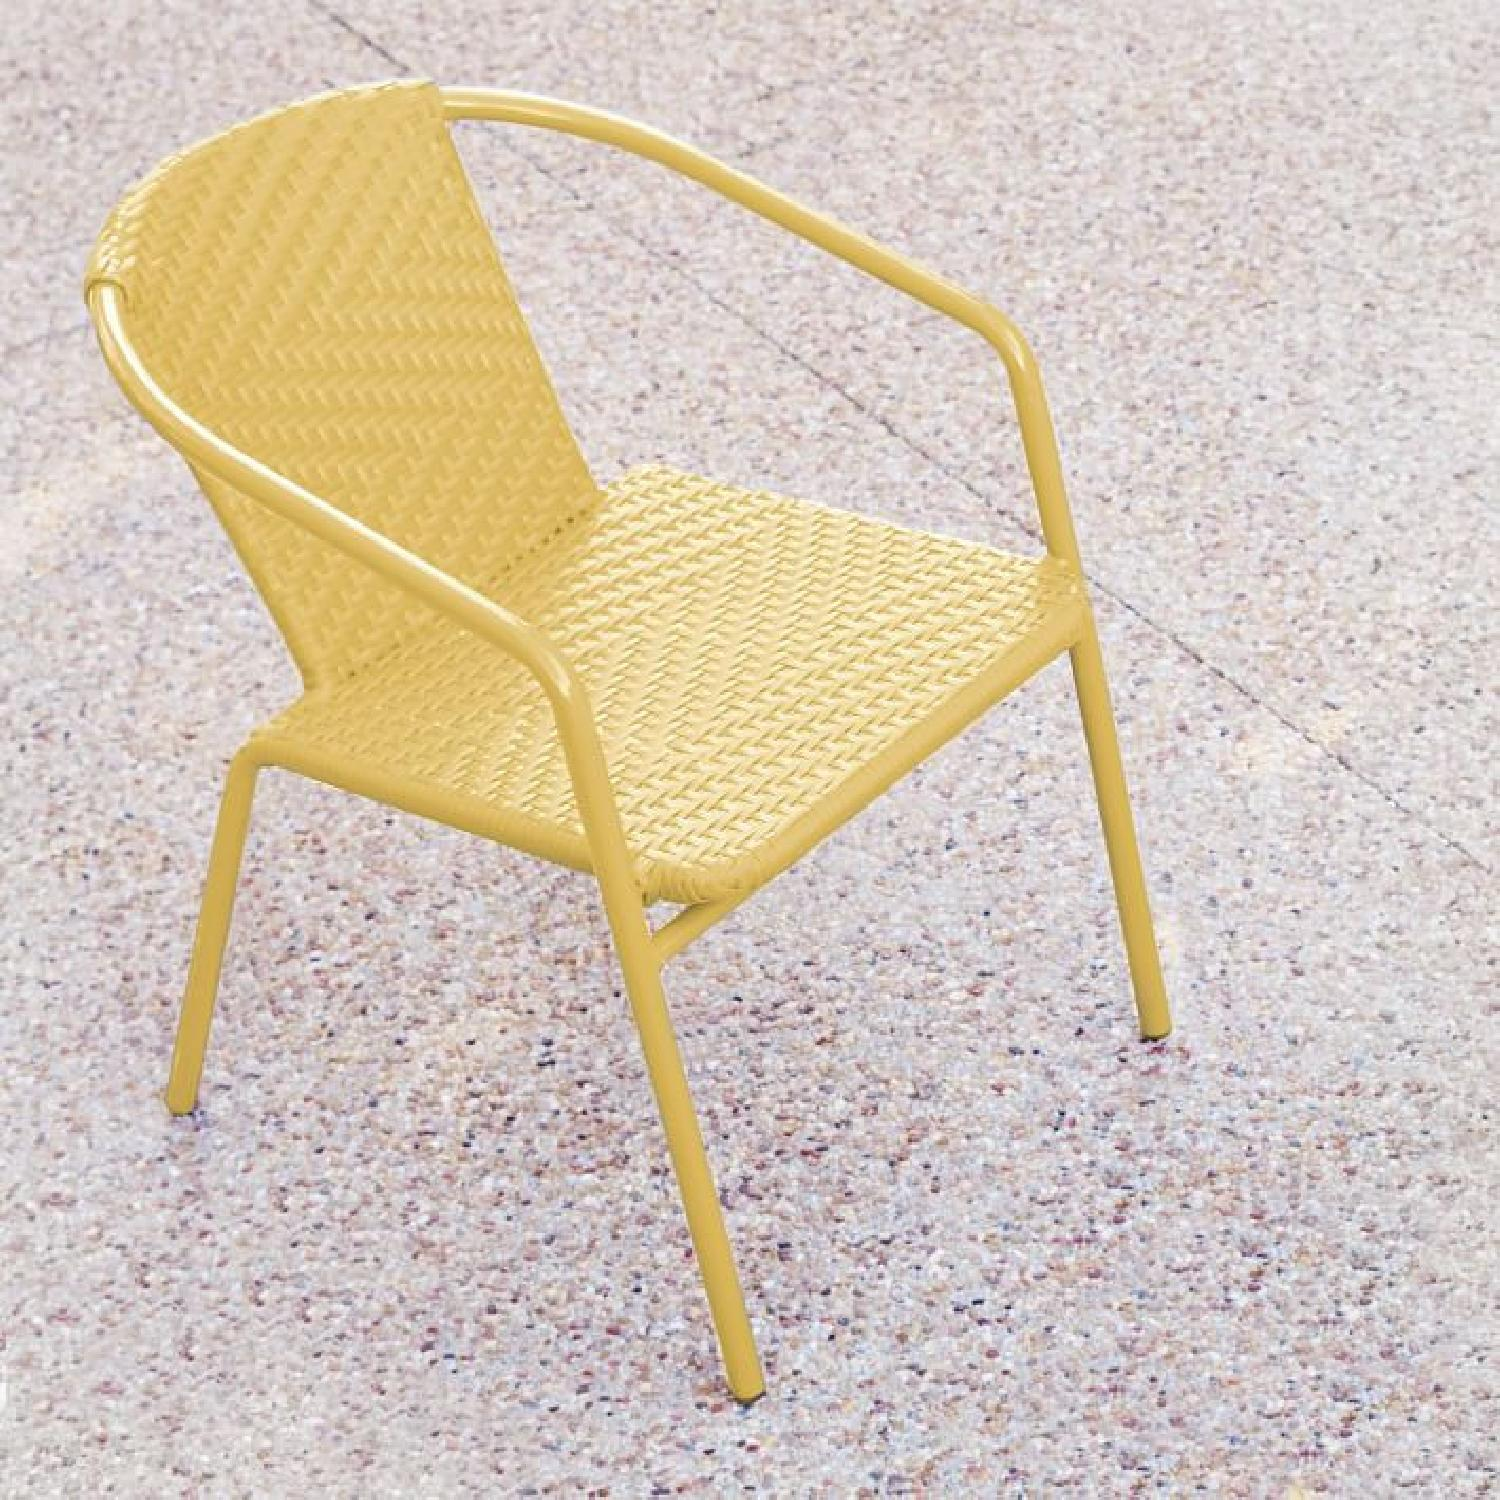 West Elm Woven Outdoor Stacking Chairs - image-0